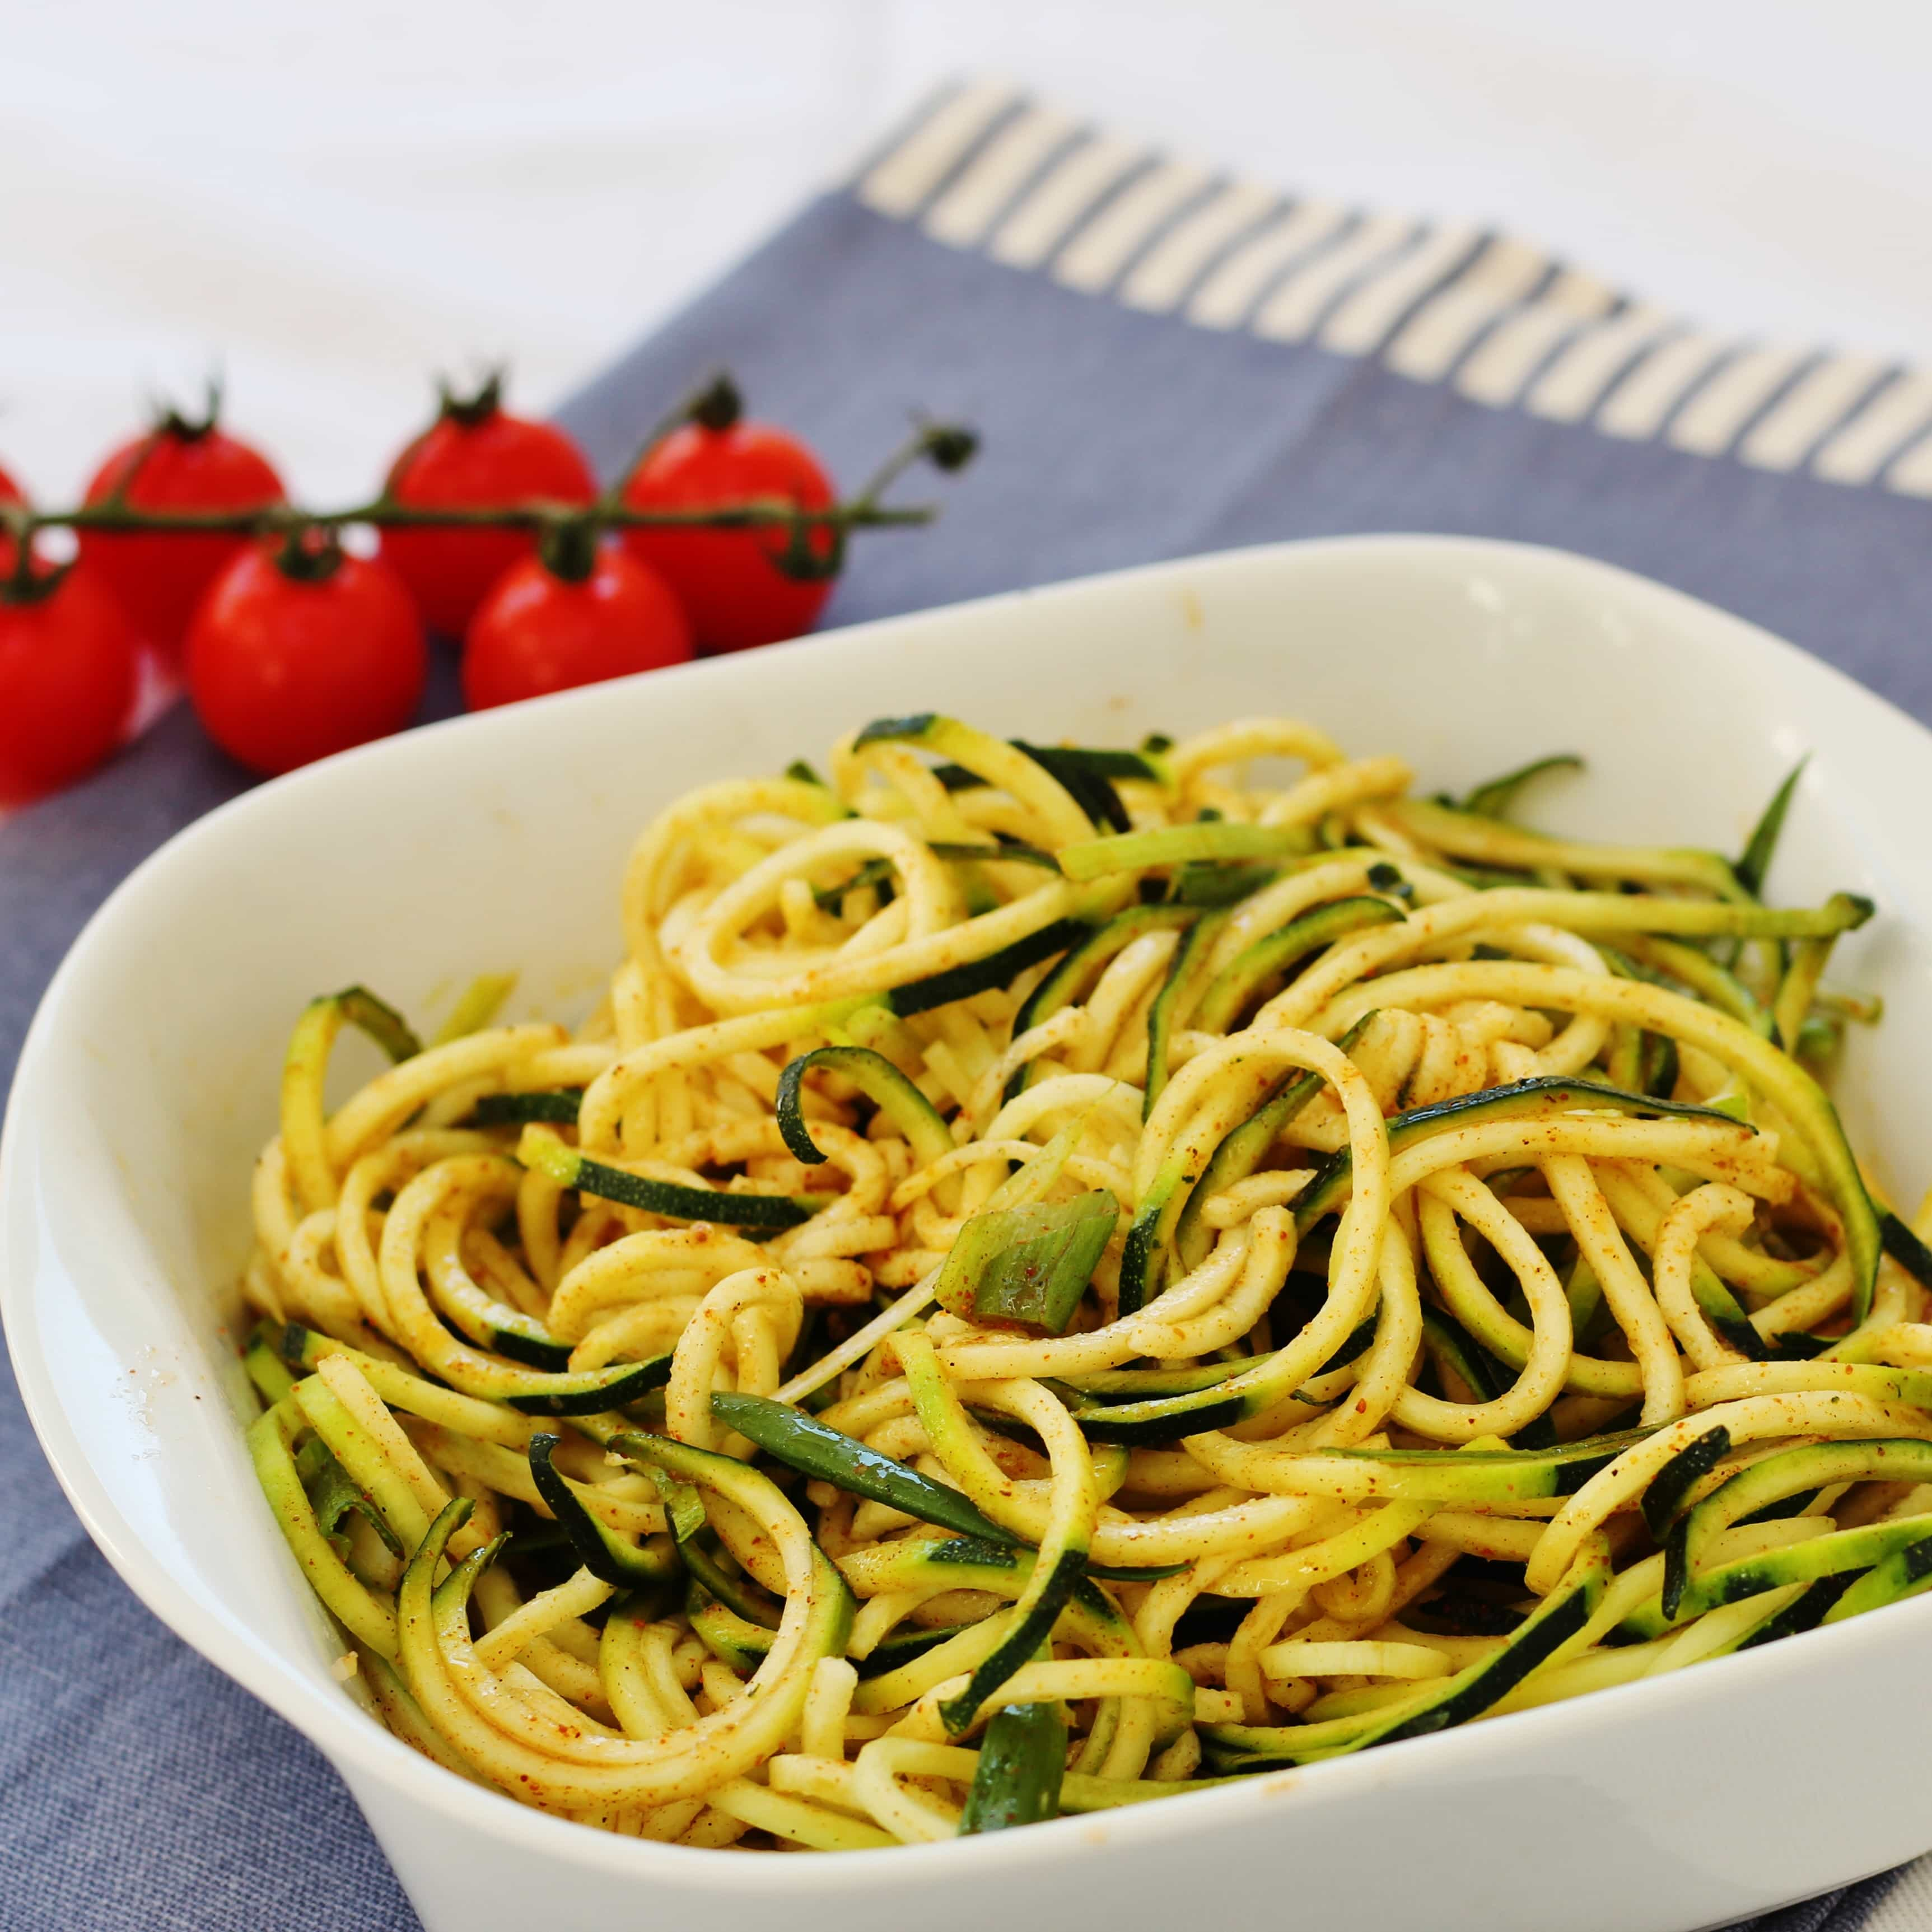 courgetti salad in a bowl